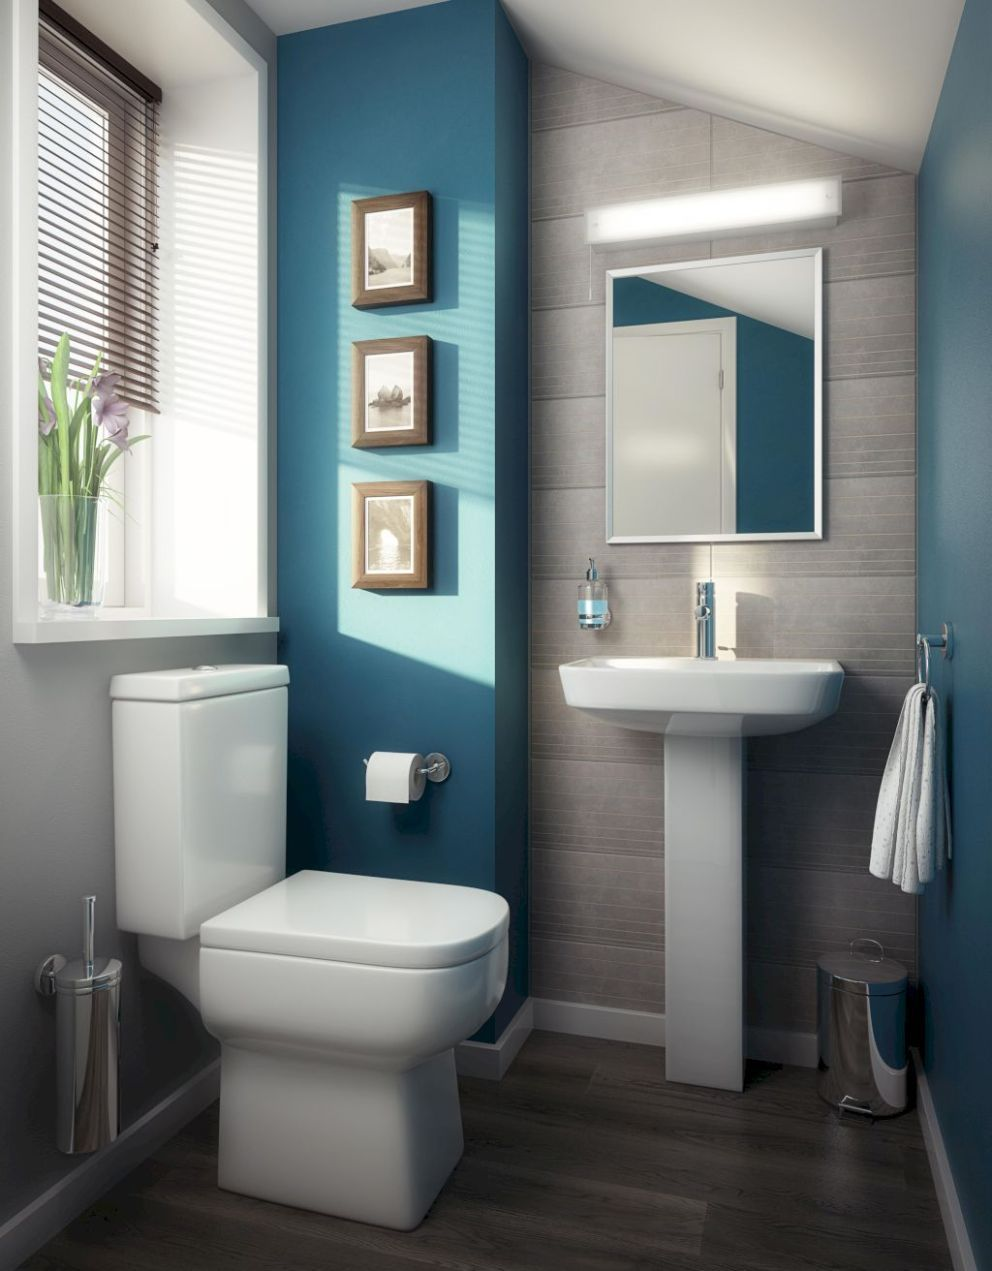 30 Small Bathroom Design Ideas For Your Home Modern Small